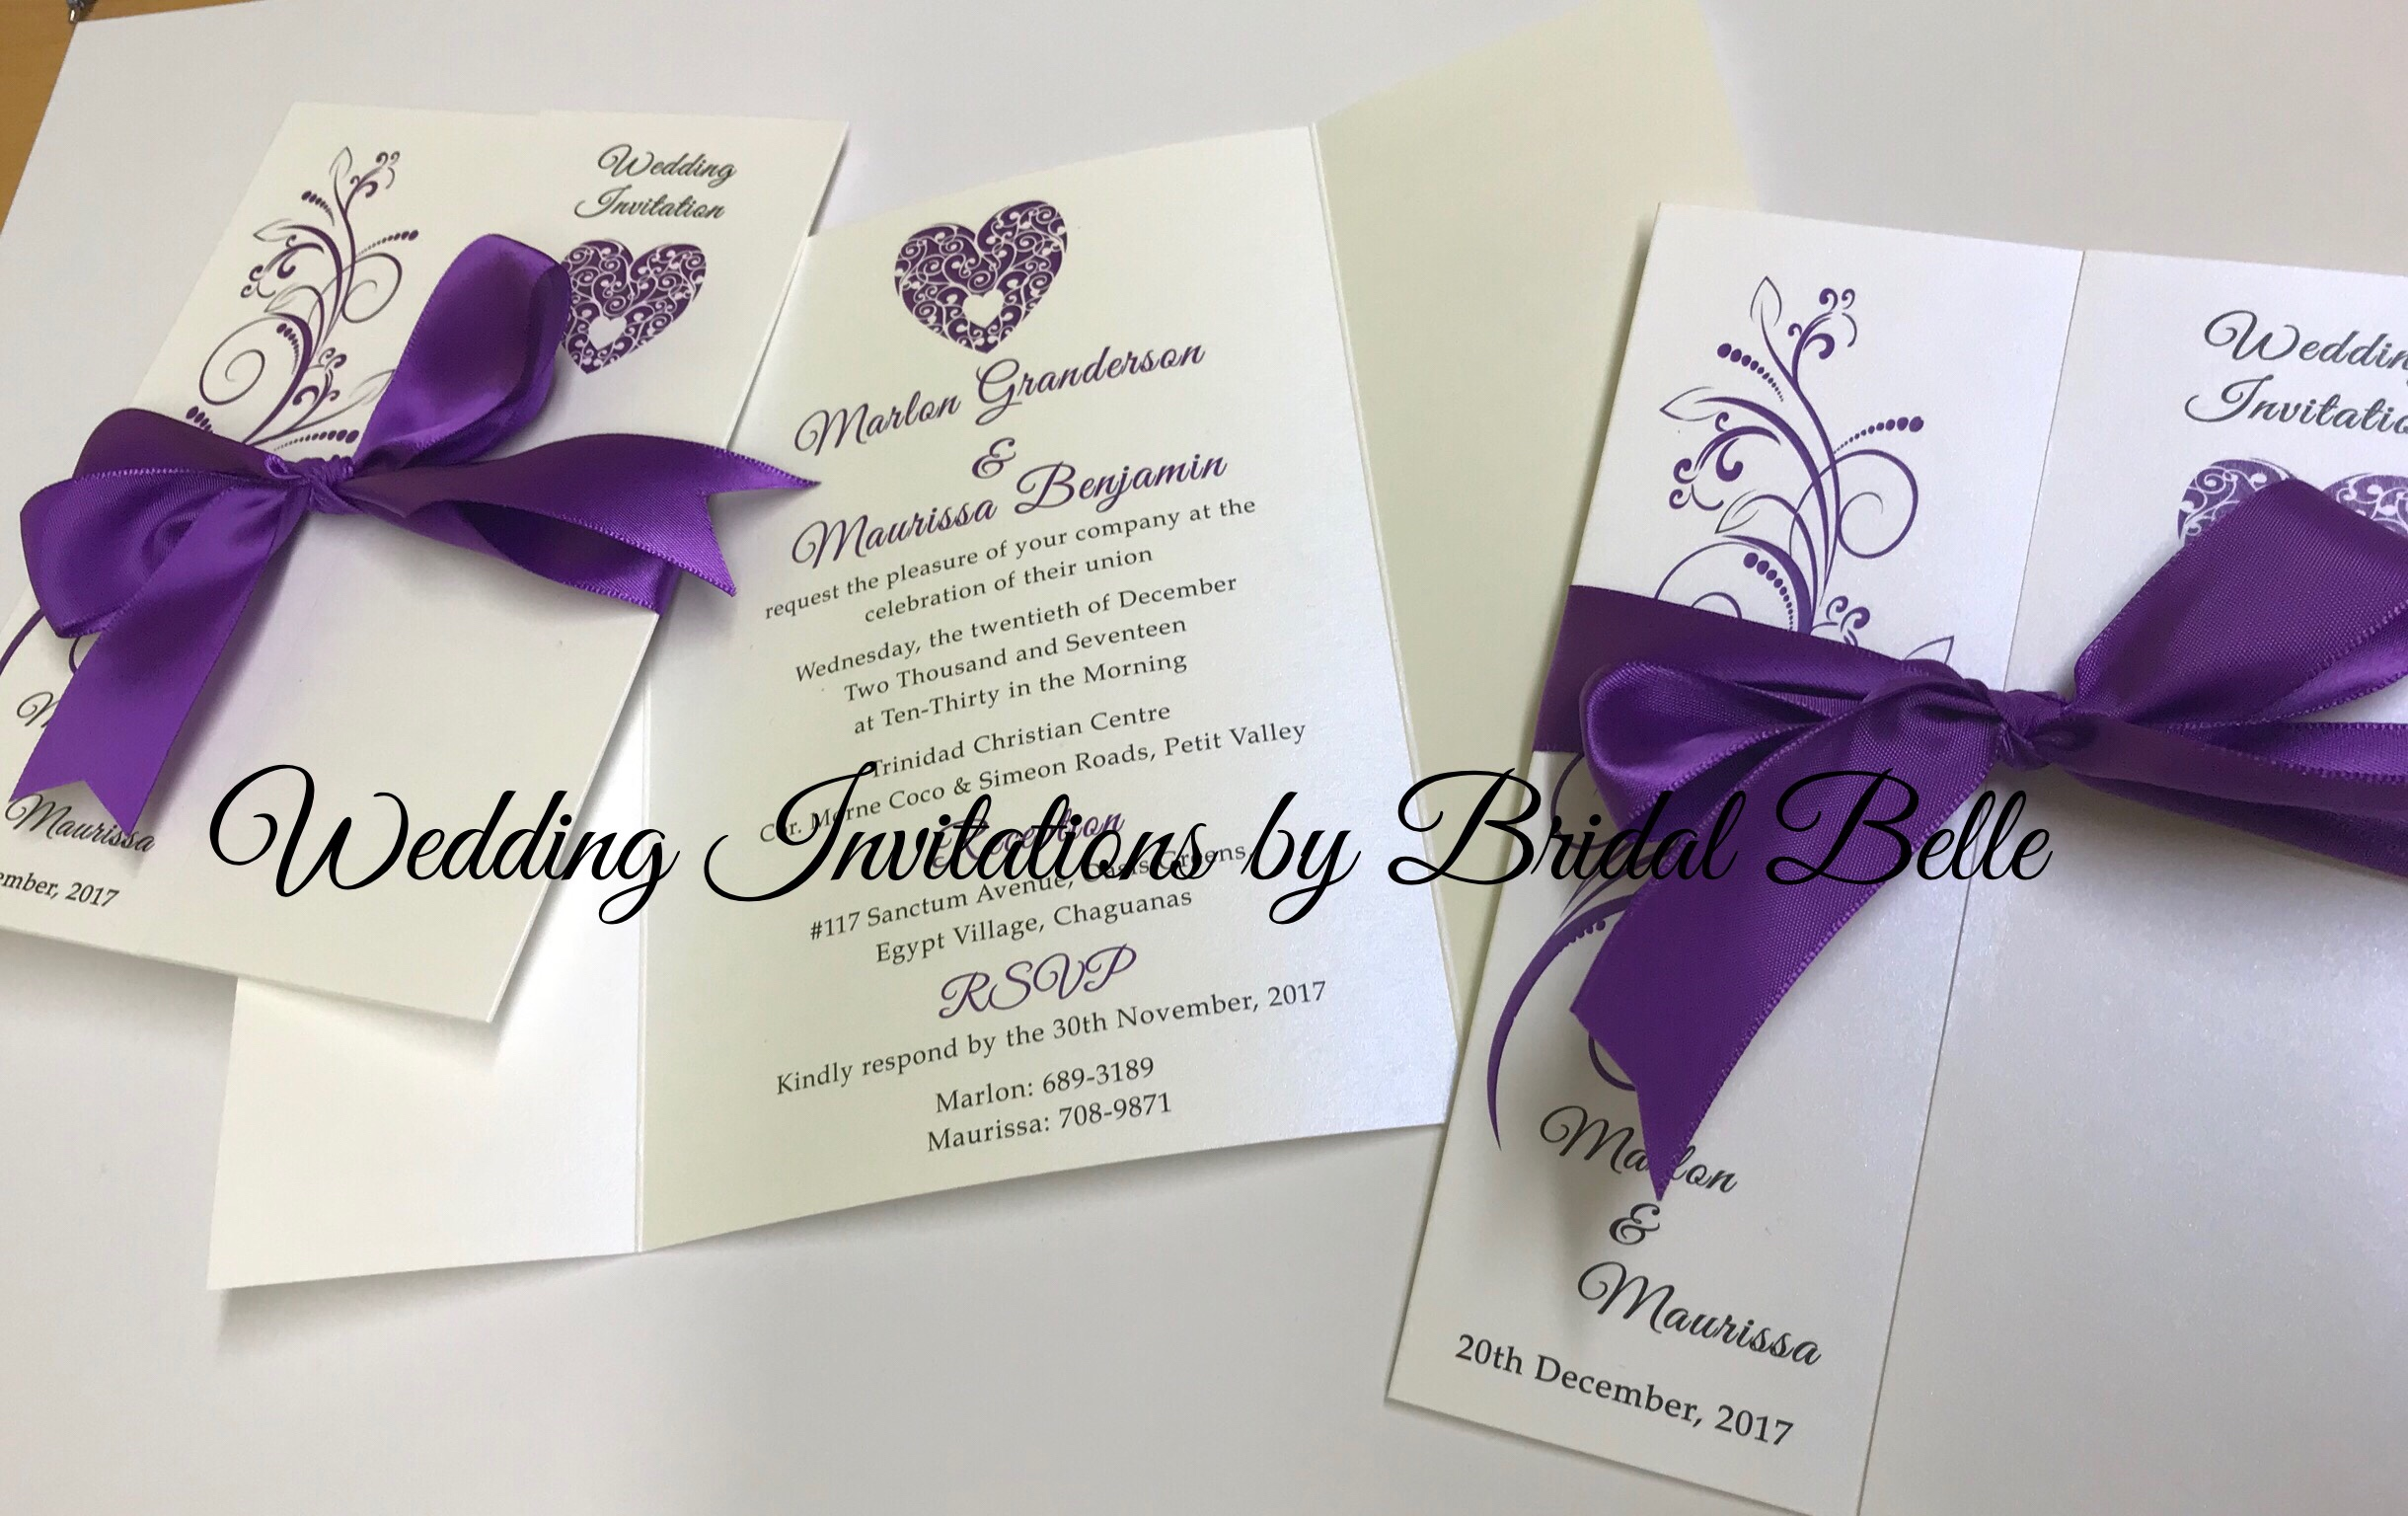 Jacket Invitations – Wedding Invitations by Bridal Belle